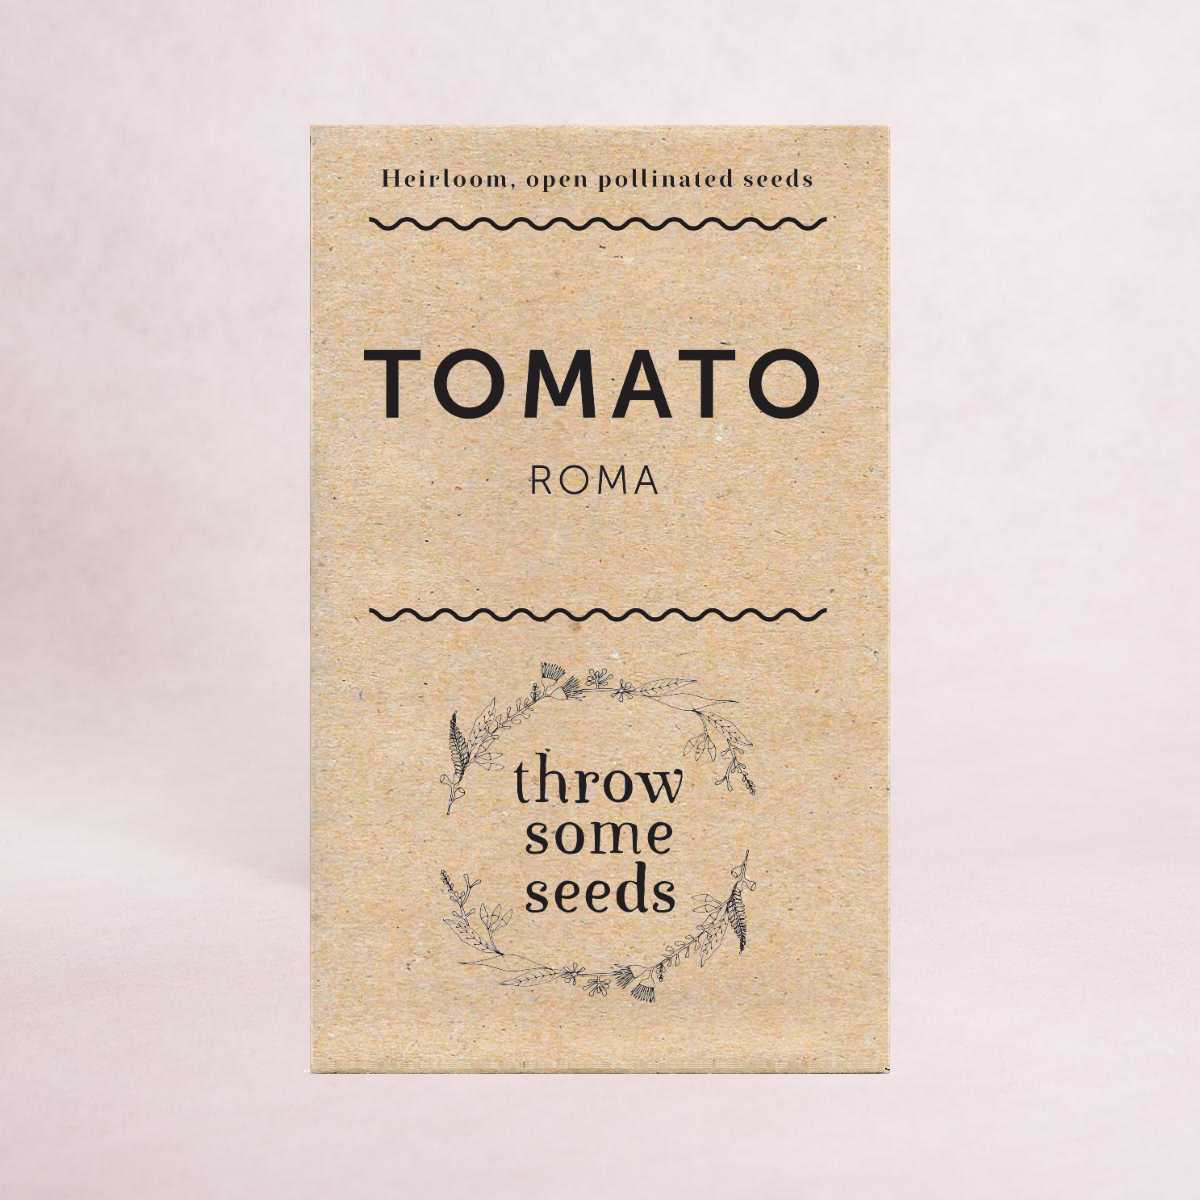 Tomato (Roma) Seeds - Seeds - Throw Some Seeds - Australian gardening gifts and eco products online!